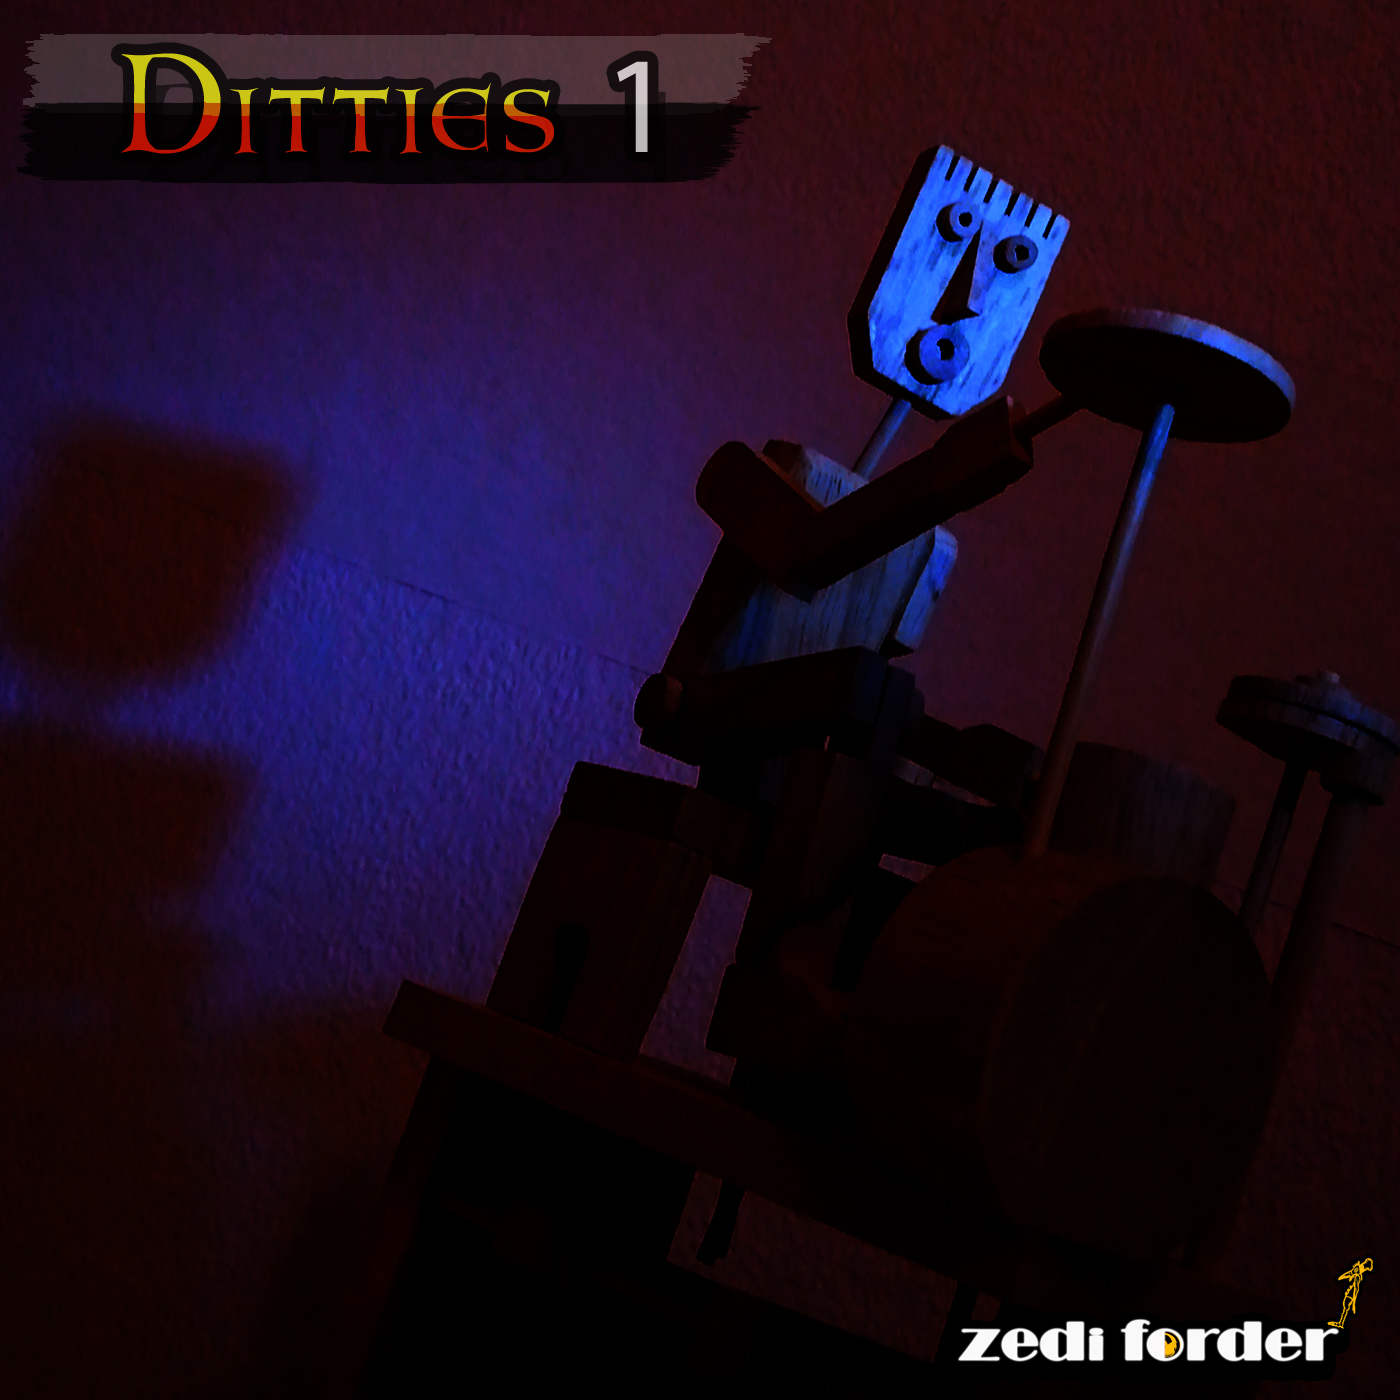 Zedi Forder Ditties 1 (EP)